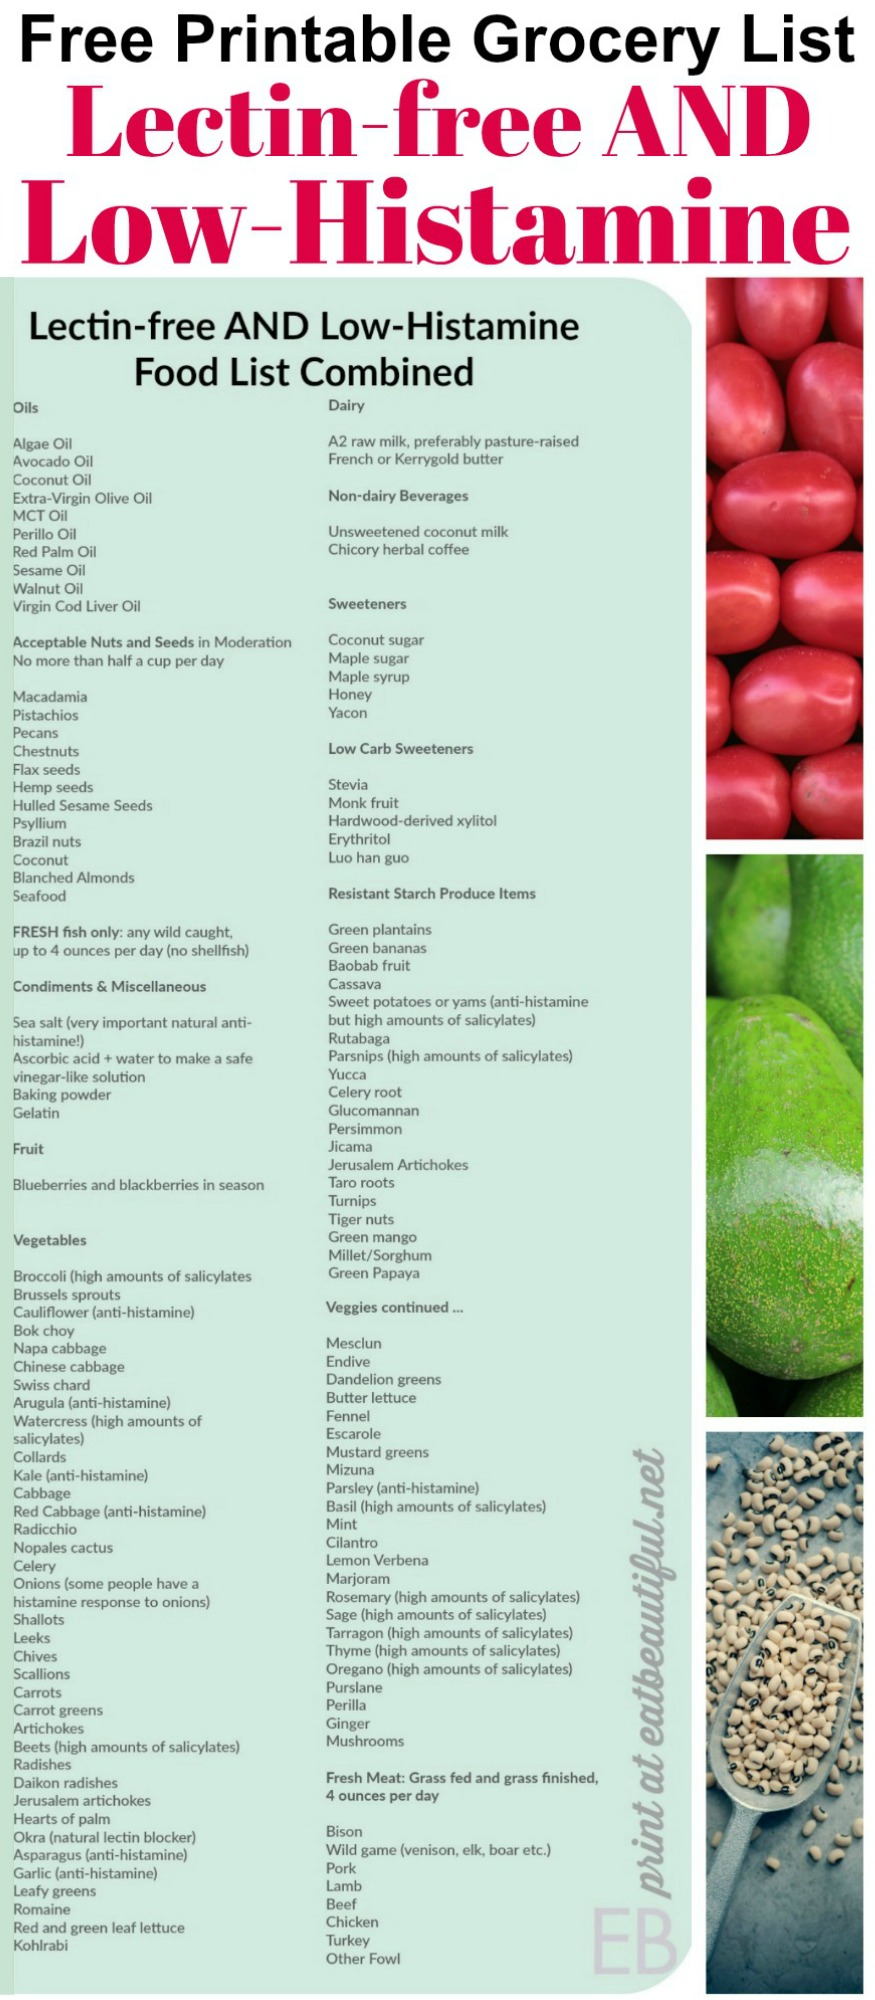 Lectin-free AND Low-Histamine Combined Food List {Grocery List with Printable!} #leakygut #lowhistamine #lectins #lectinfree #printable #grocerylist #list